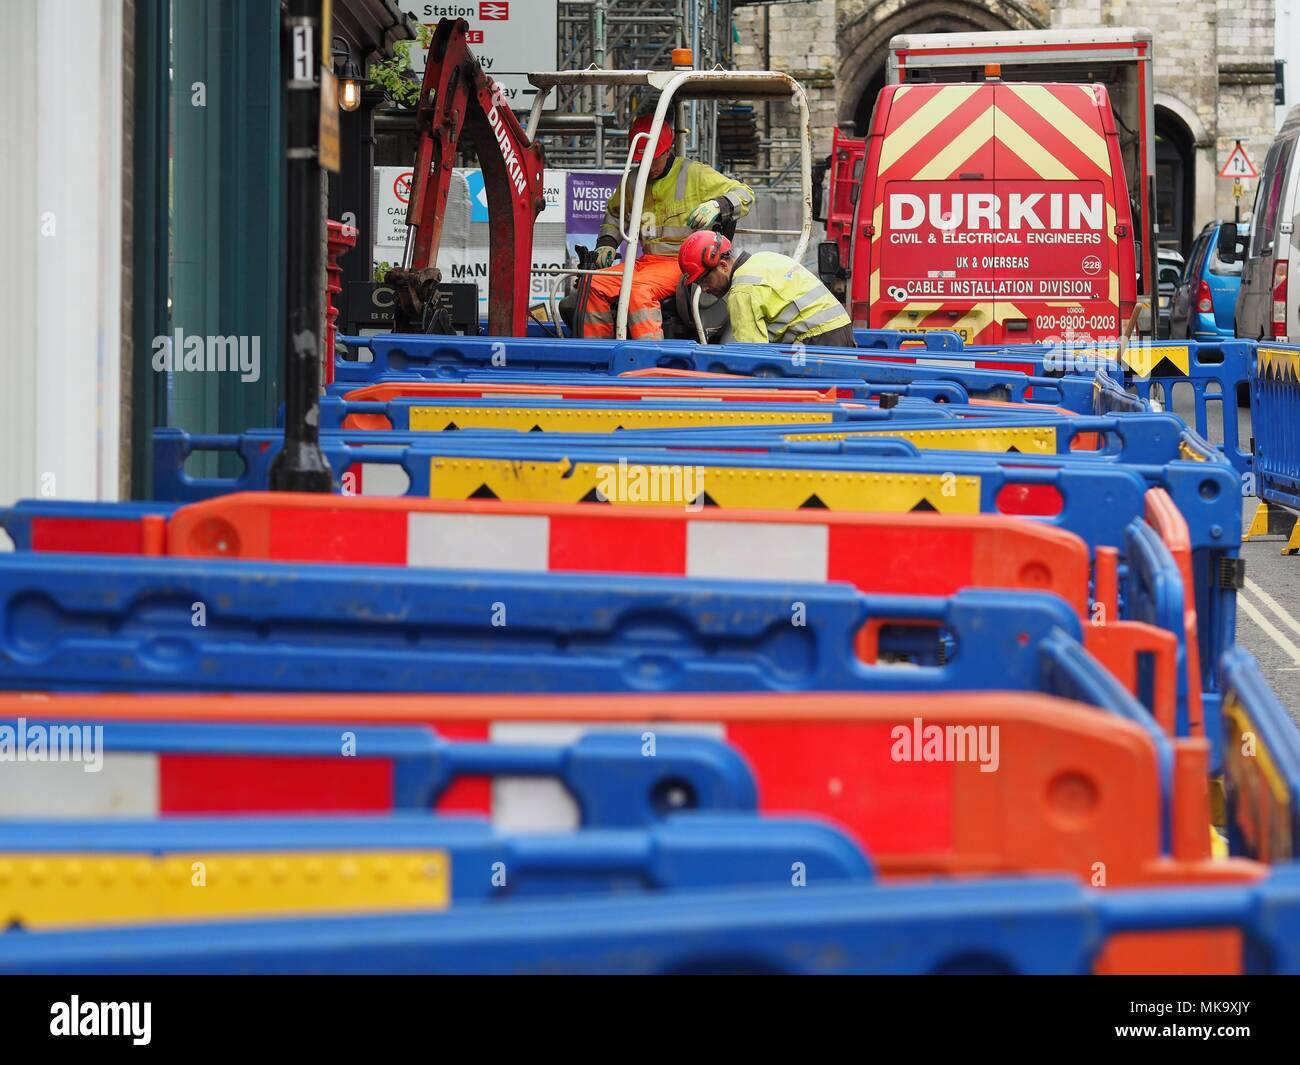 Winchester pavement improvements extensive work, traders affected by improvements - Stock Image